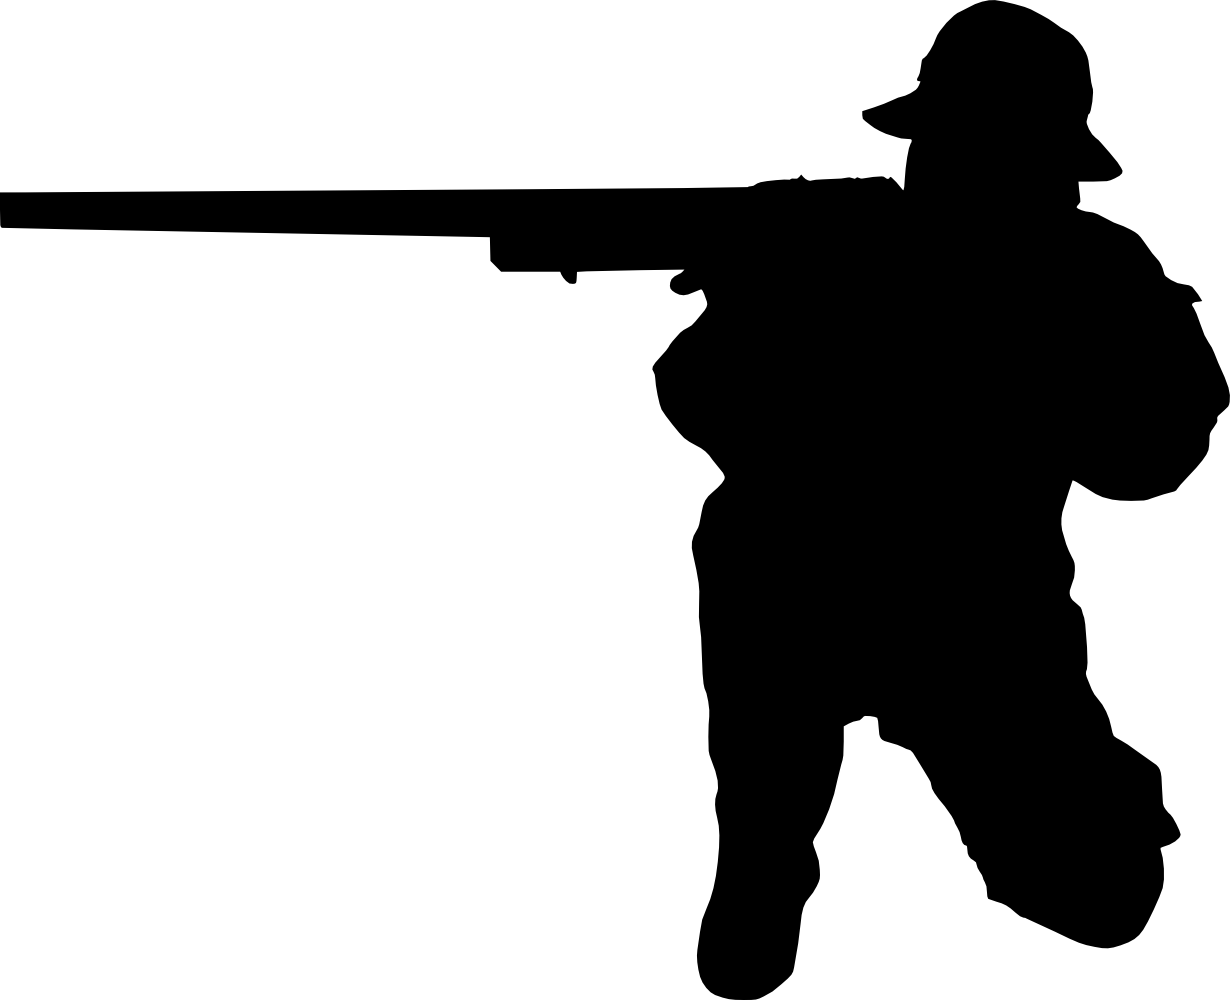 Man Shooting Silhouette